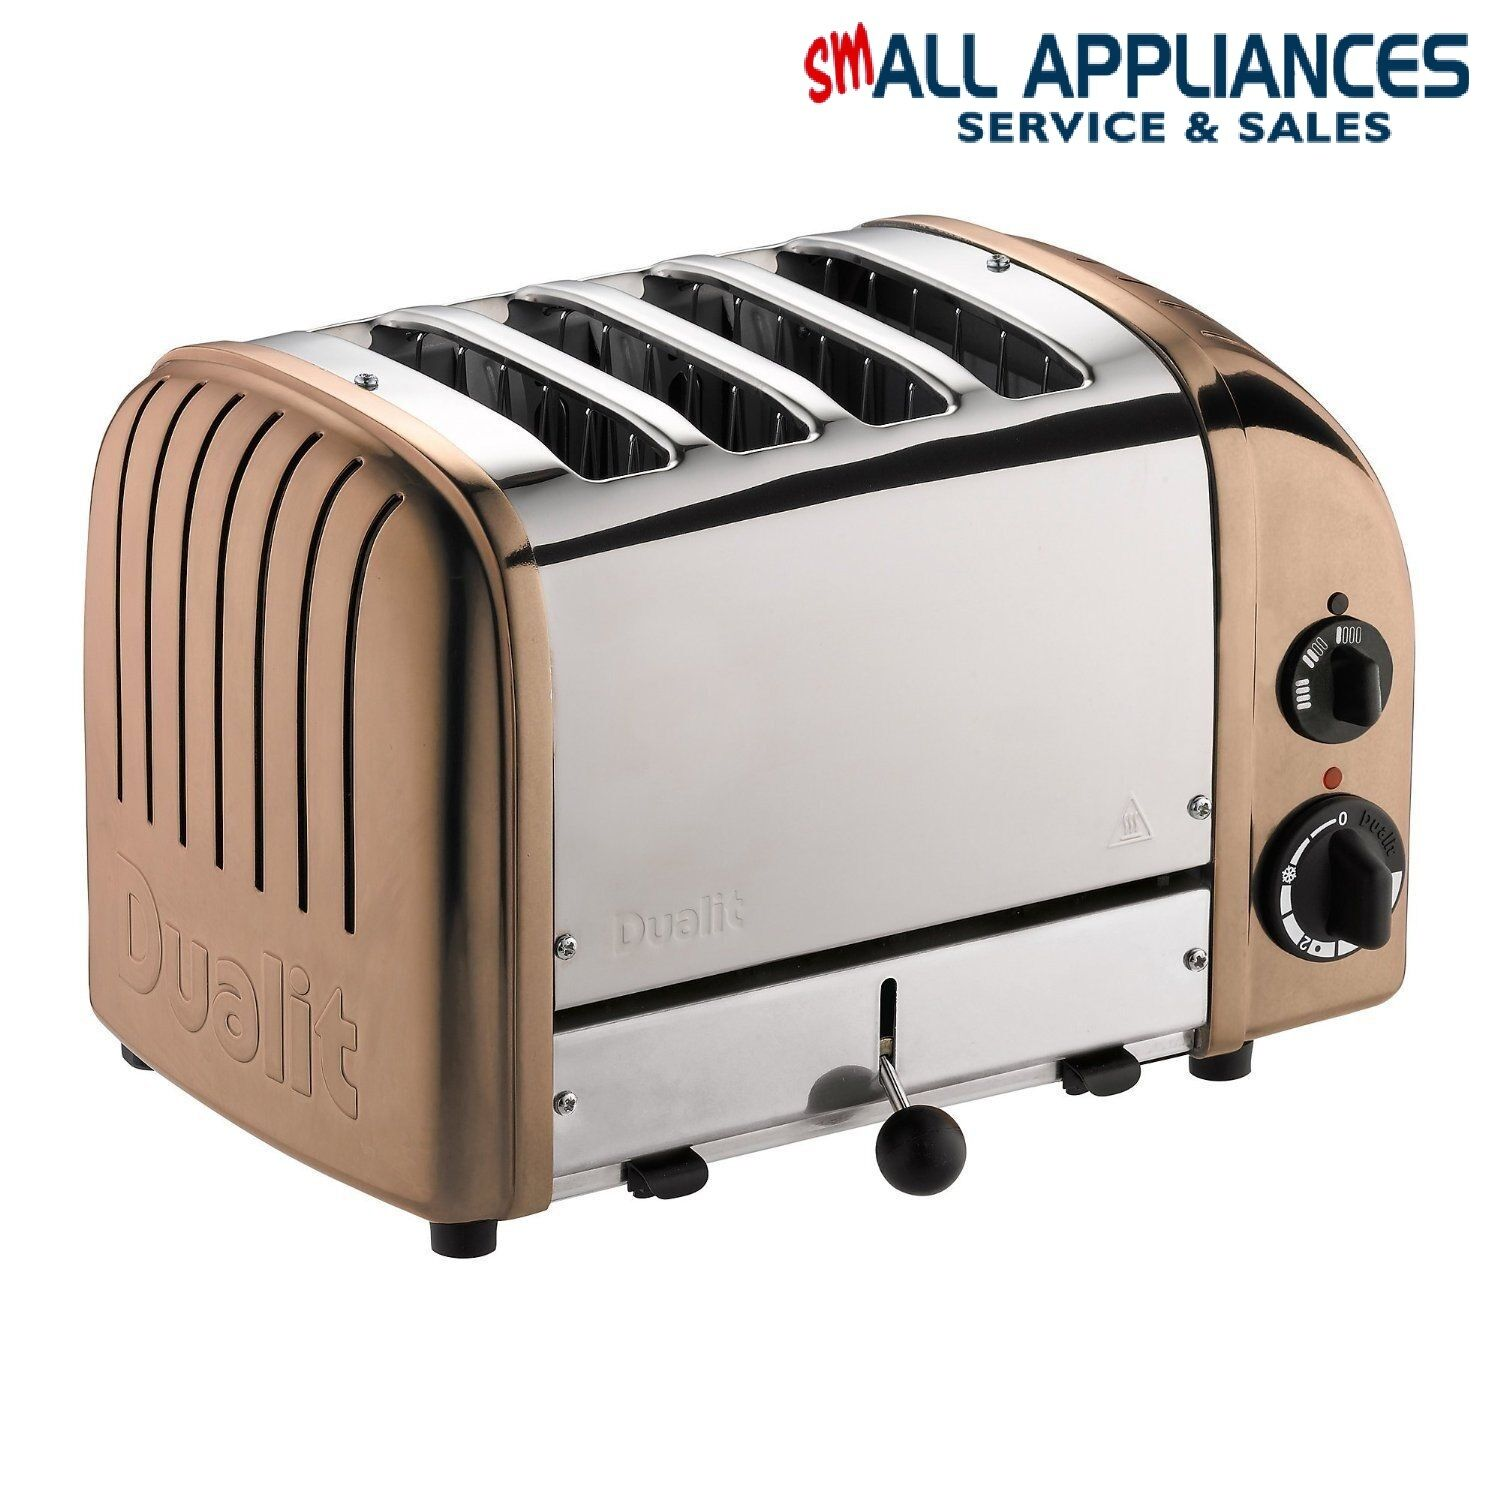 DUALIT TOASTER 4 SLICE COPPER 47450 CLASSIC WITH 5 YEAR WARRANTY IN HEIDELBERG